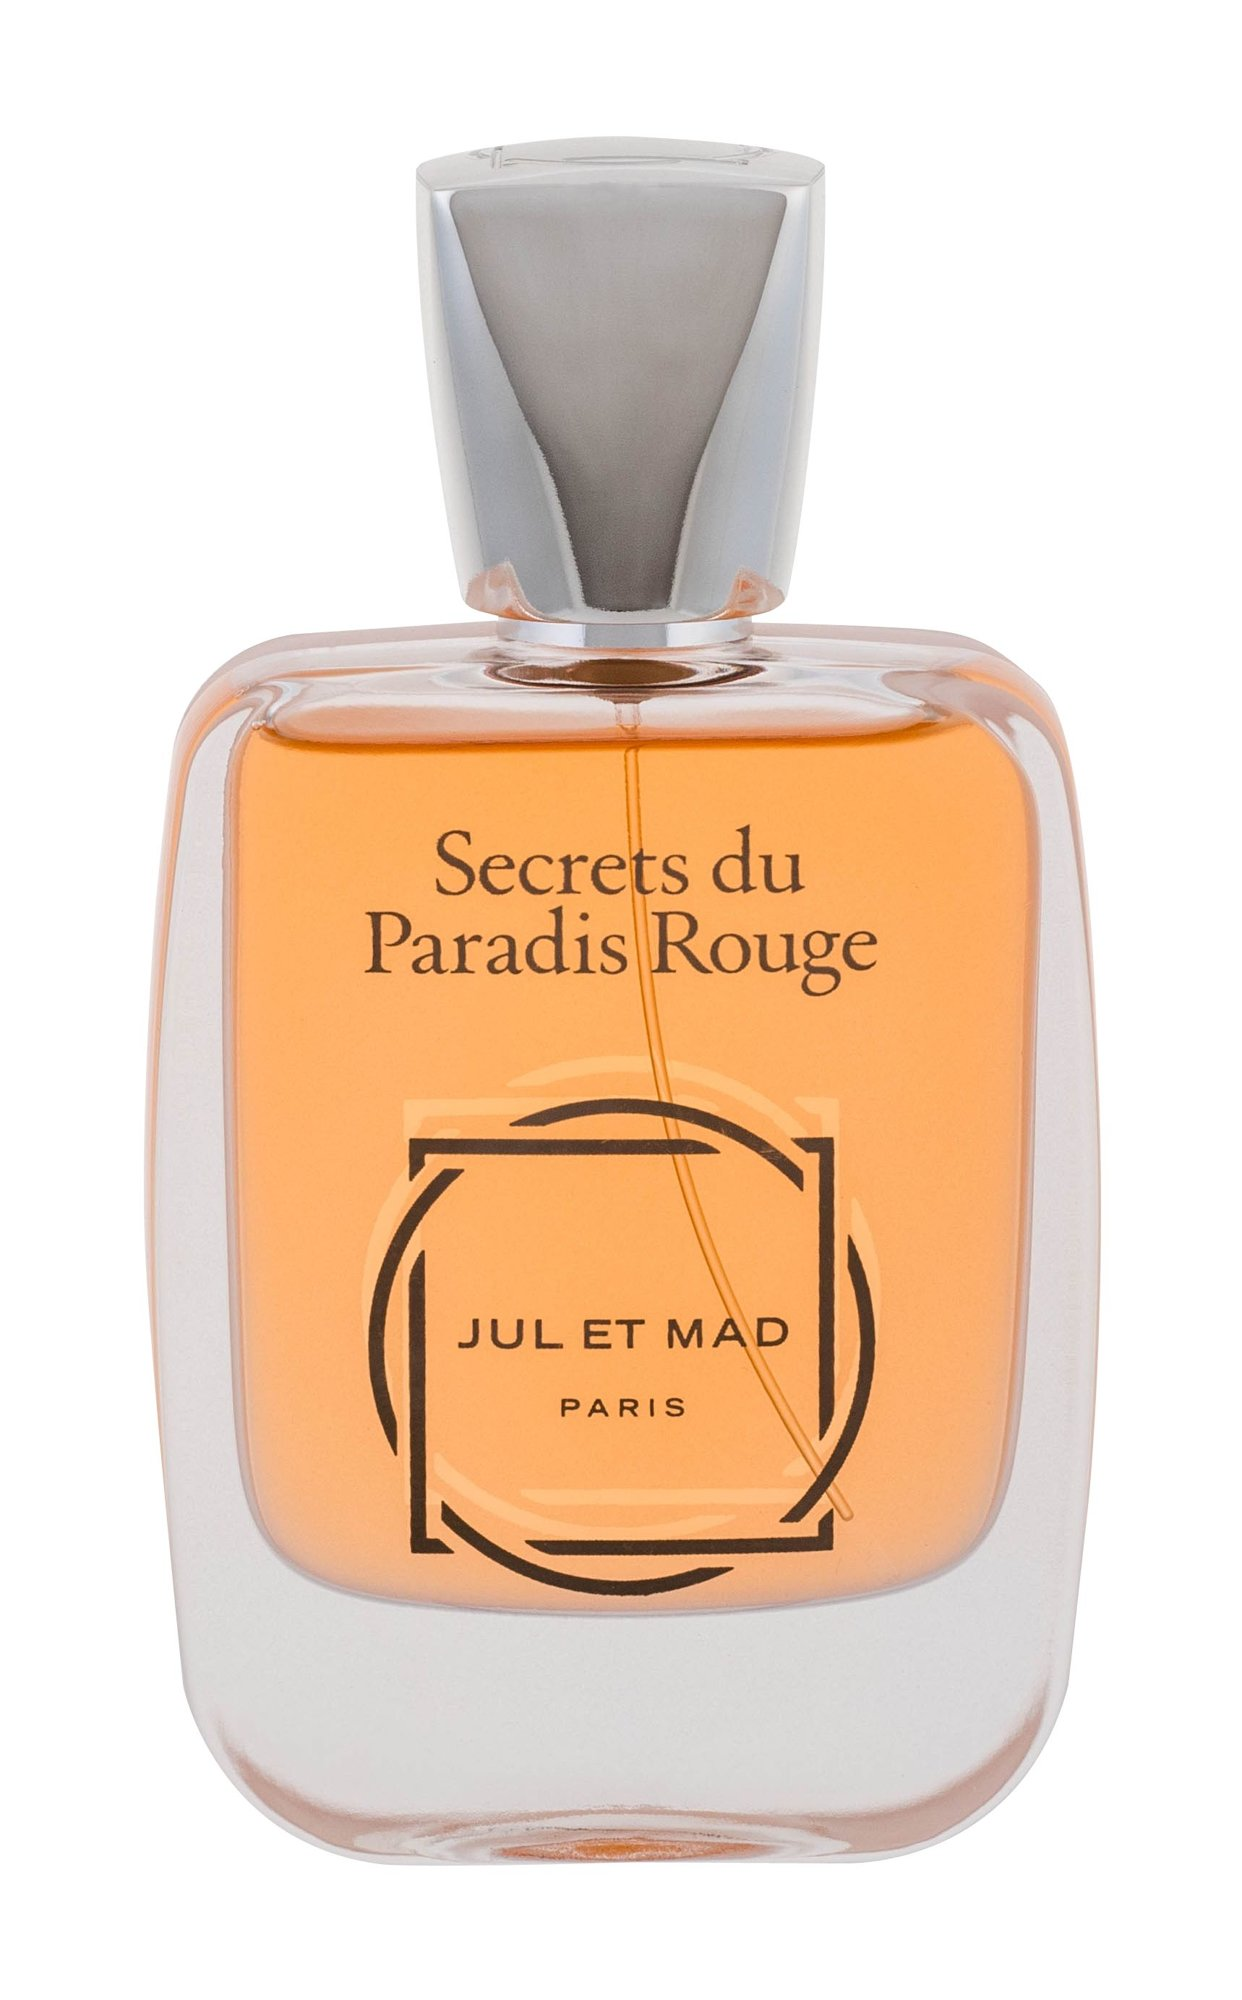 Jul et Mad Paris Secrets du Paradis Rouge Perfume 50ml